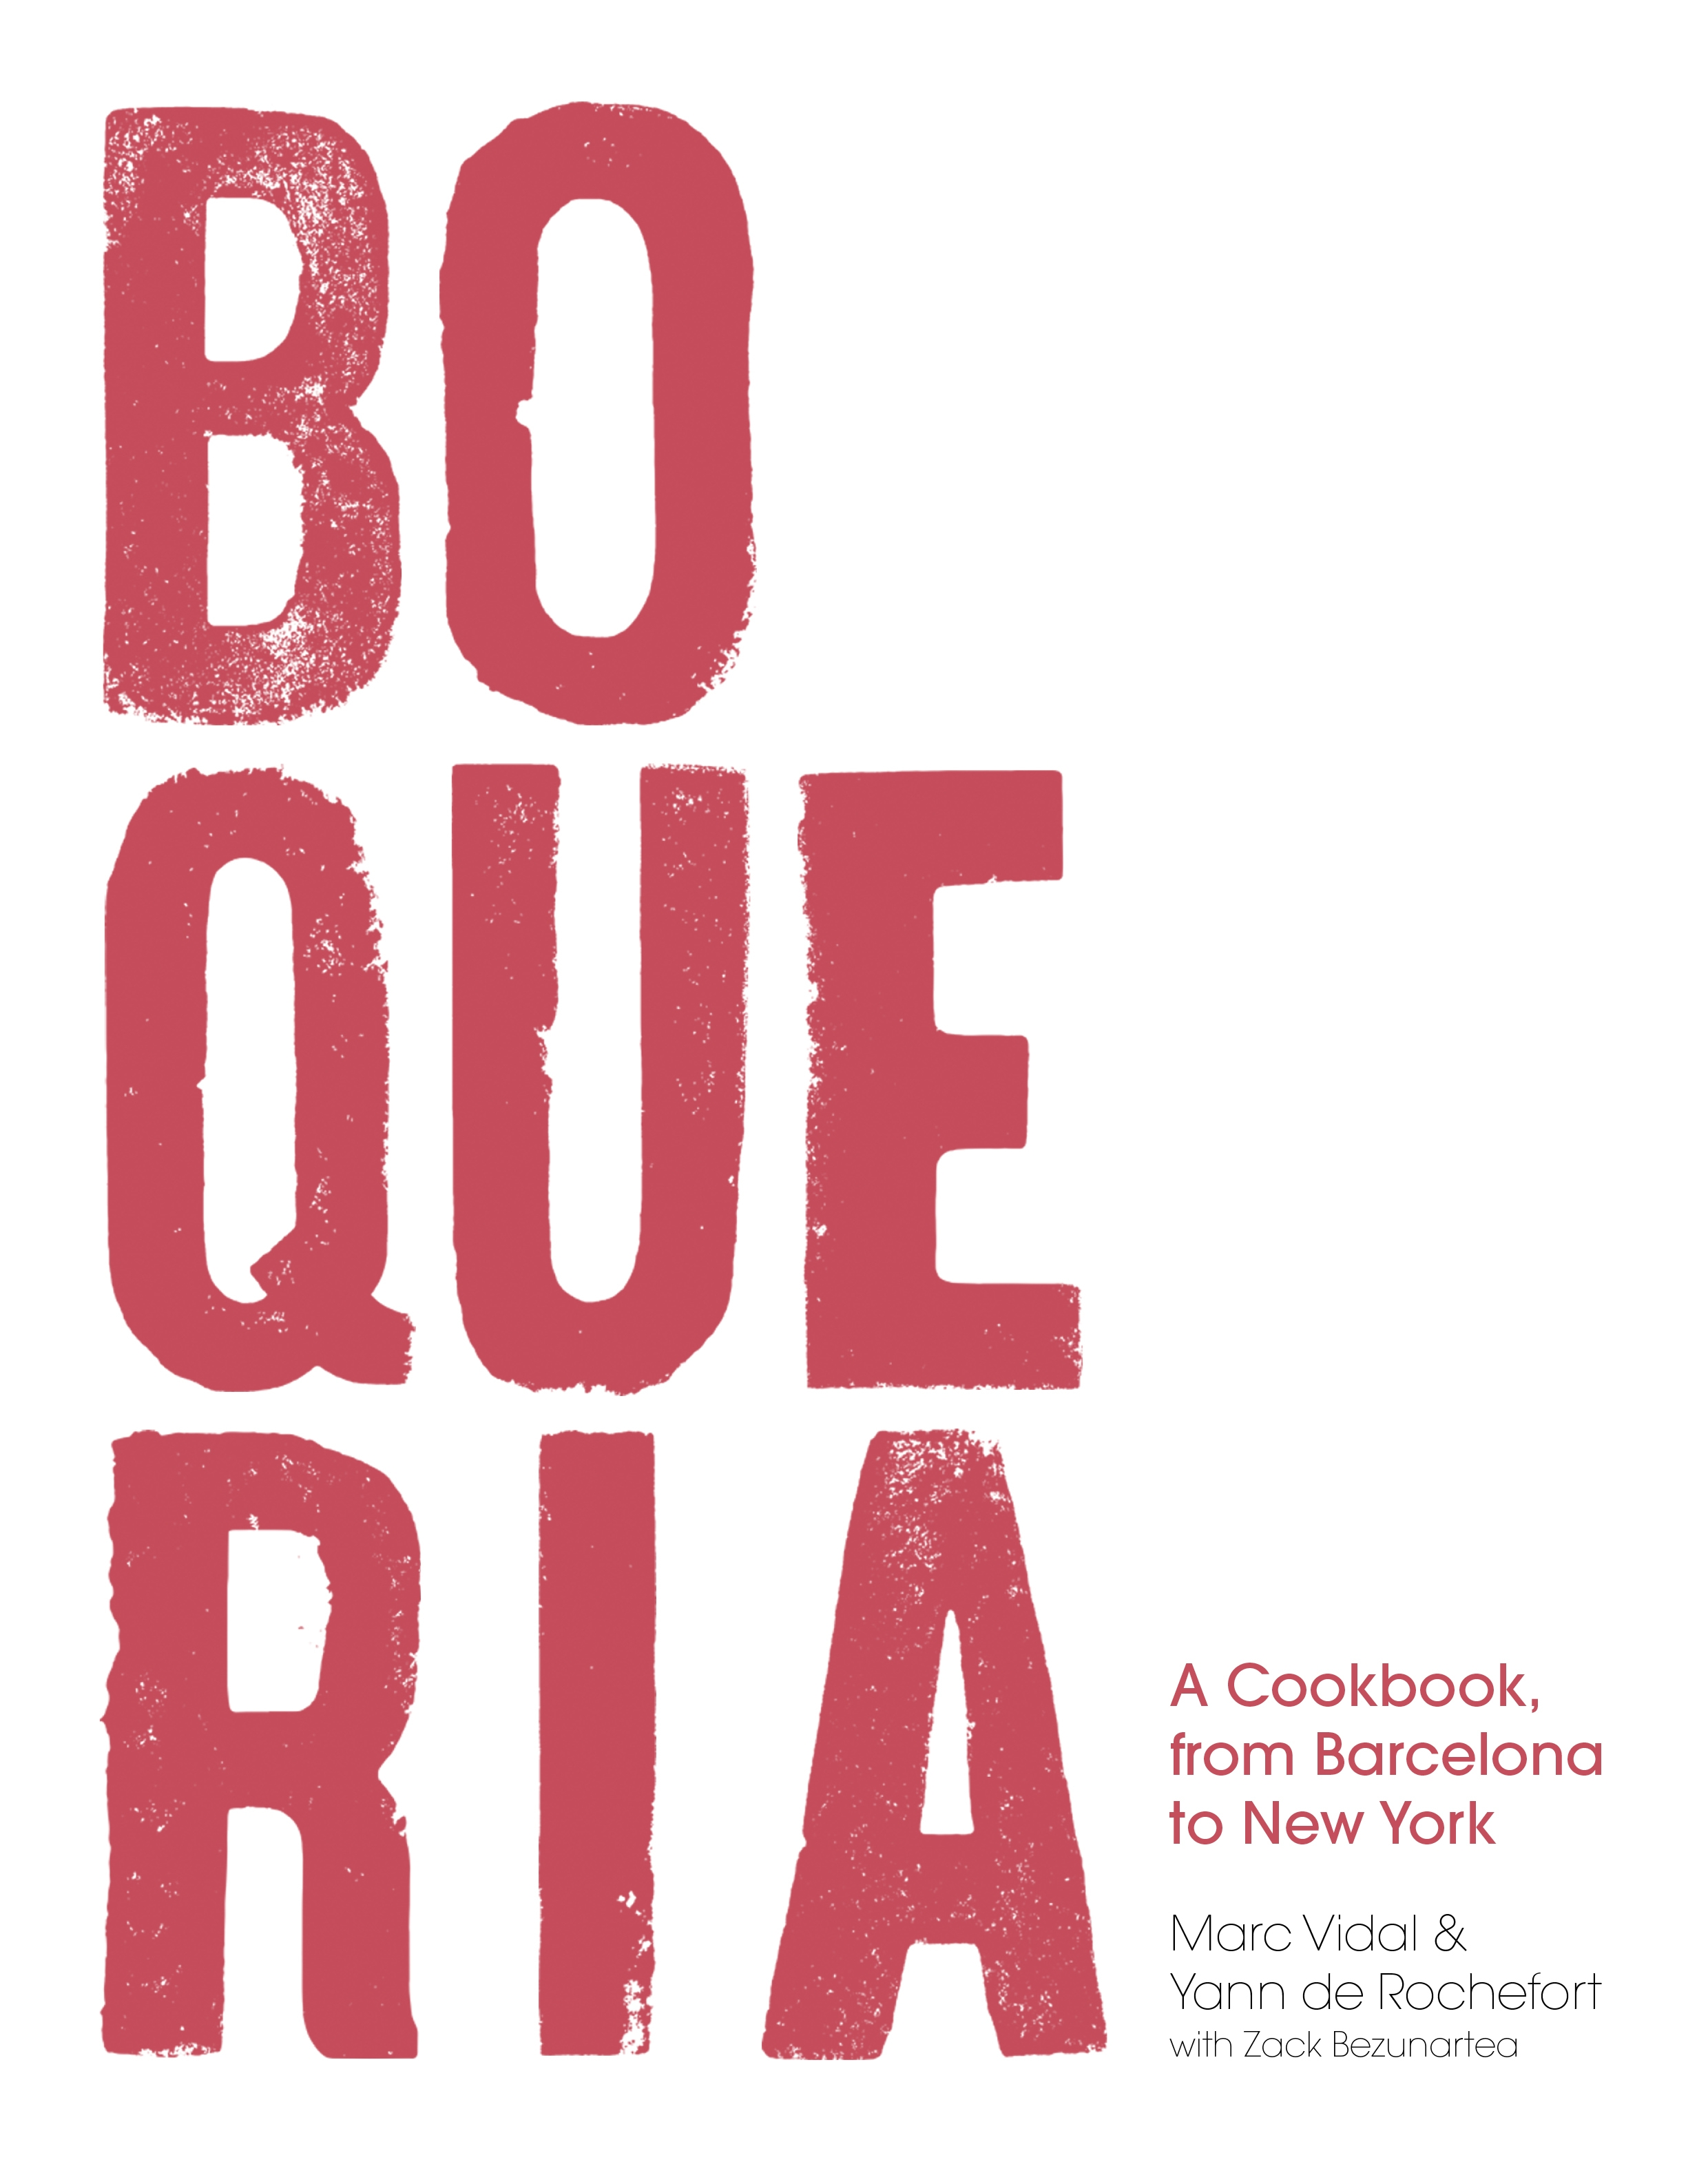 Book Launch: Boqueria: A Cookbook, from Barcelona to New York by Marc Vidal  & Yann de Rochefort